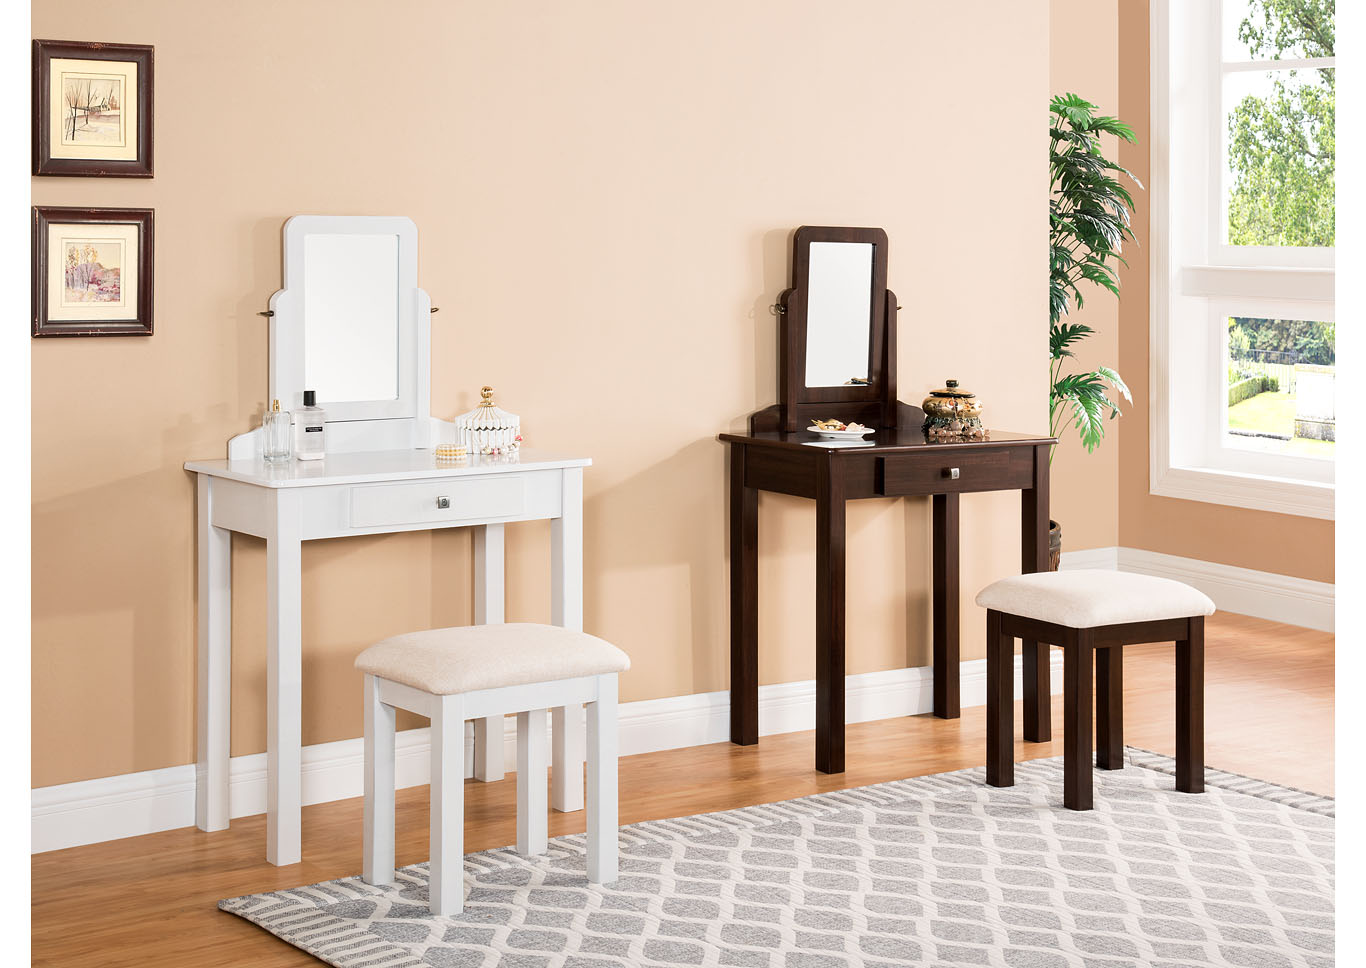 Espresso Vanity,Global Trading